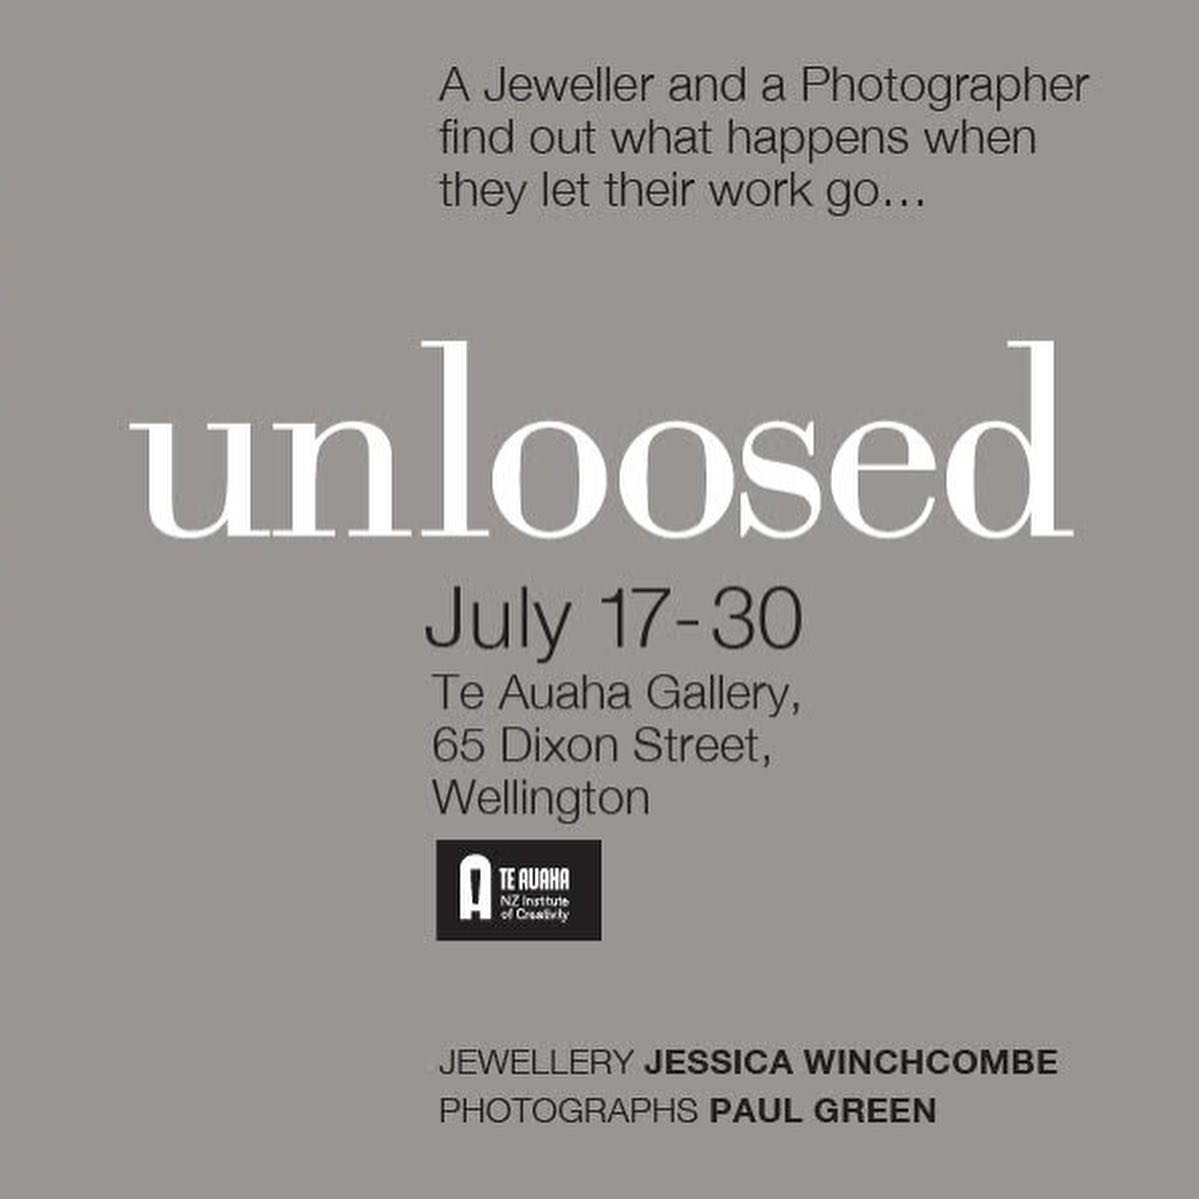 Unloosed exhibition